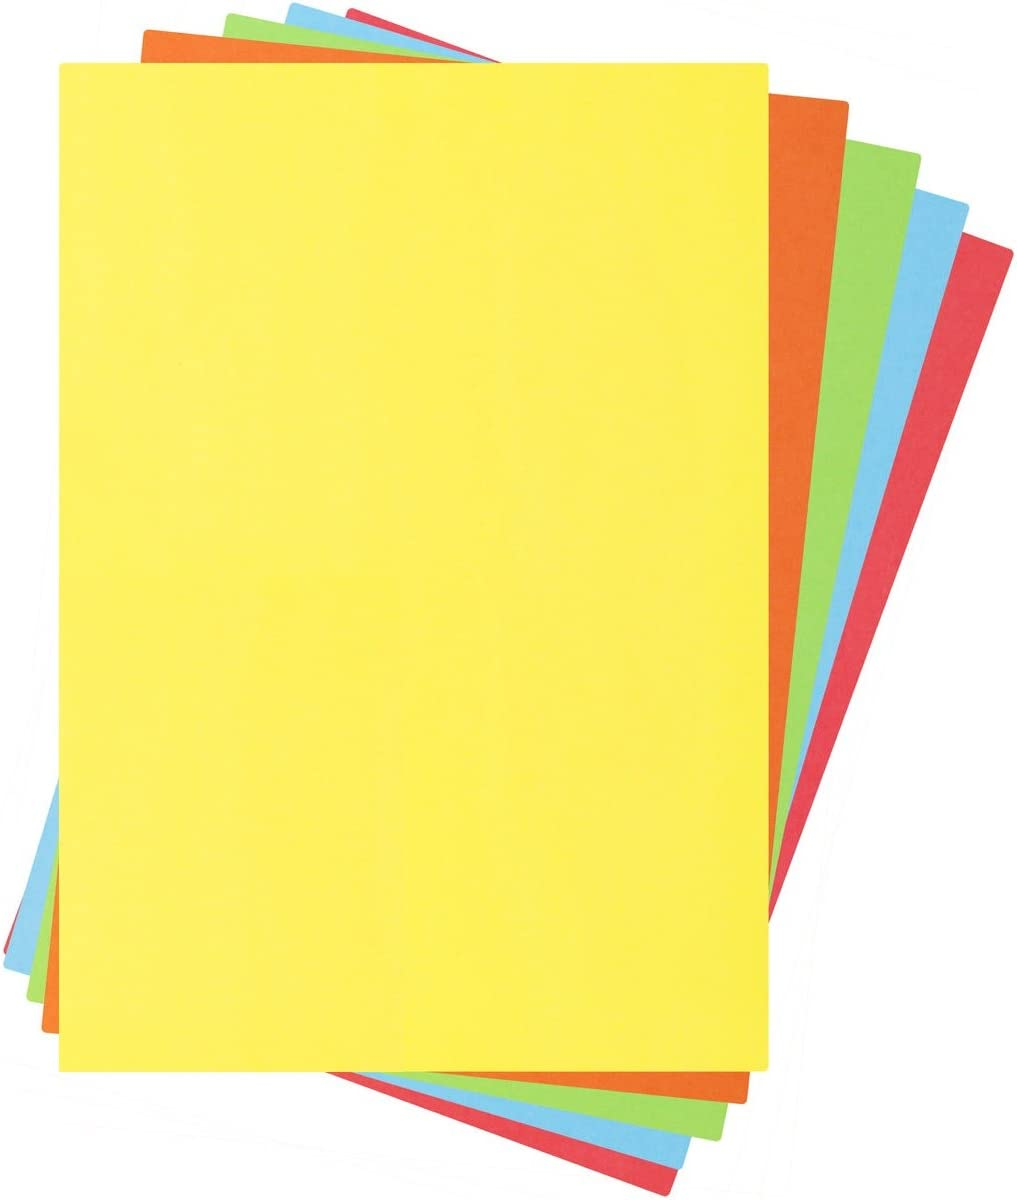 A4 Coloured Arts /& Craft Sheets 80gsm Paper OR 160gsm Card Bright Neon Colours